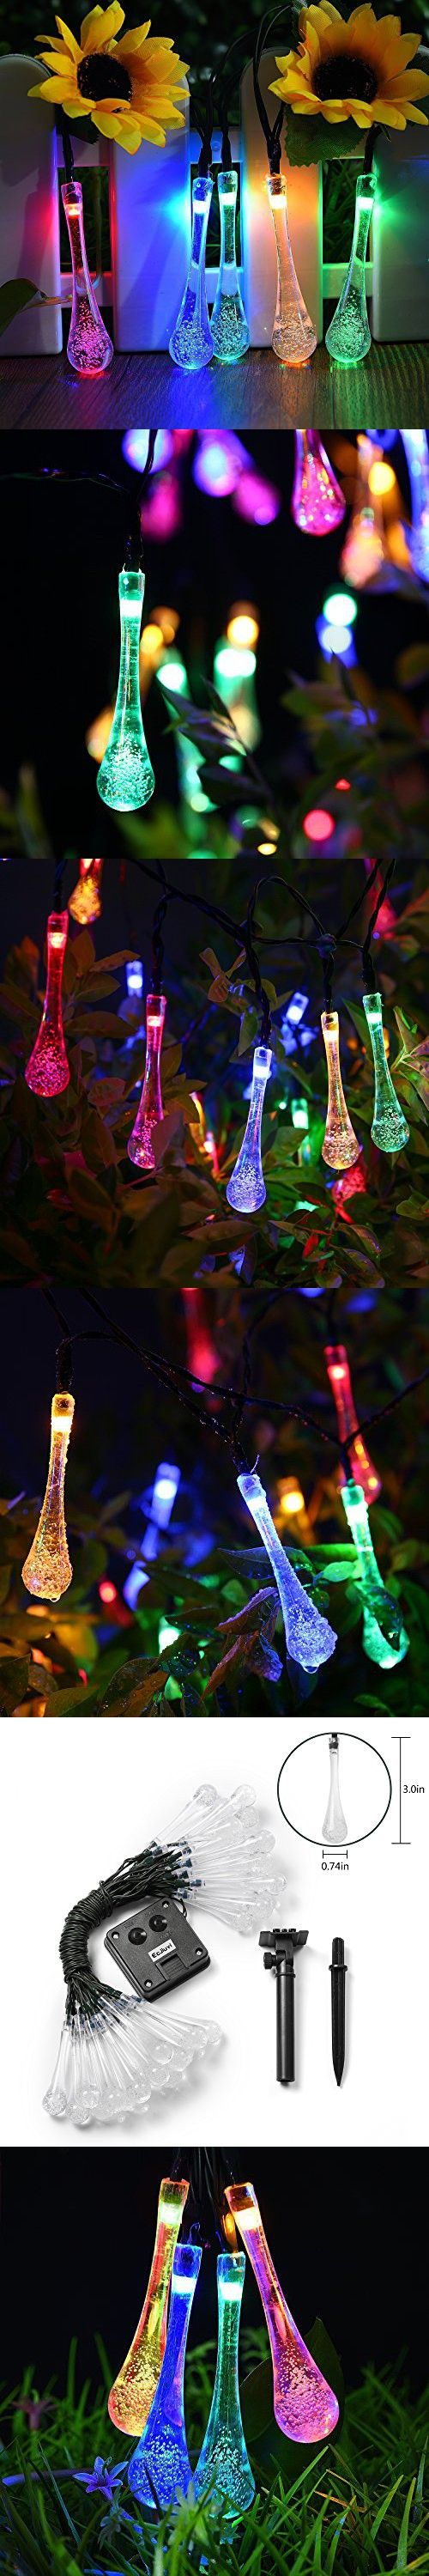 Best 25+ Solar powered christmas lights ideas on Pinterest | Solar ...